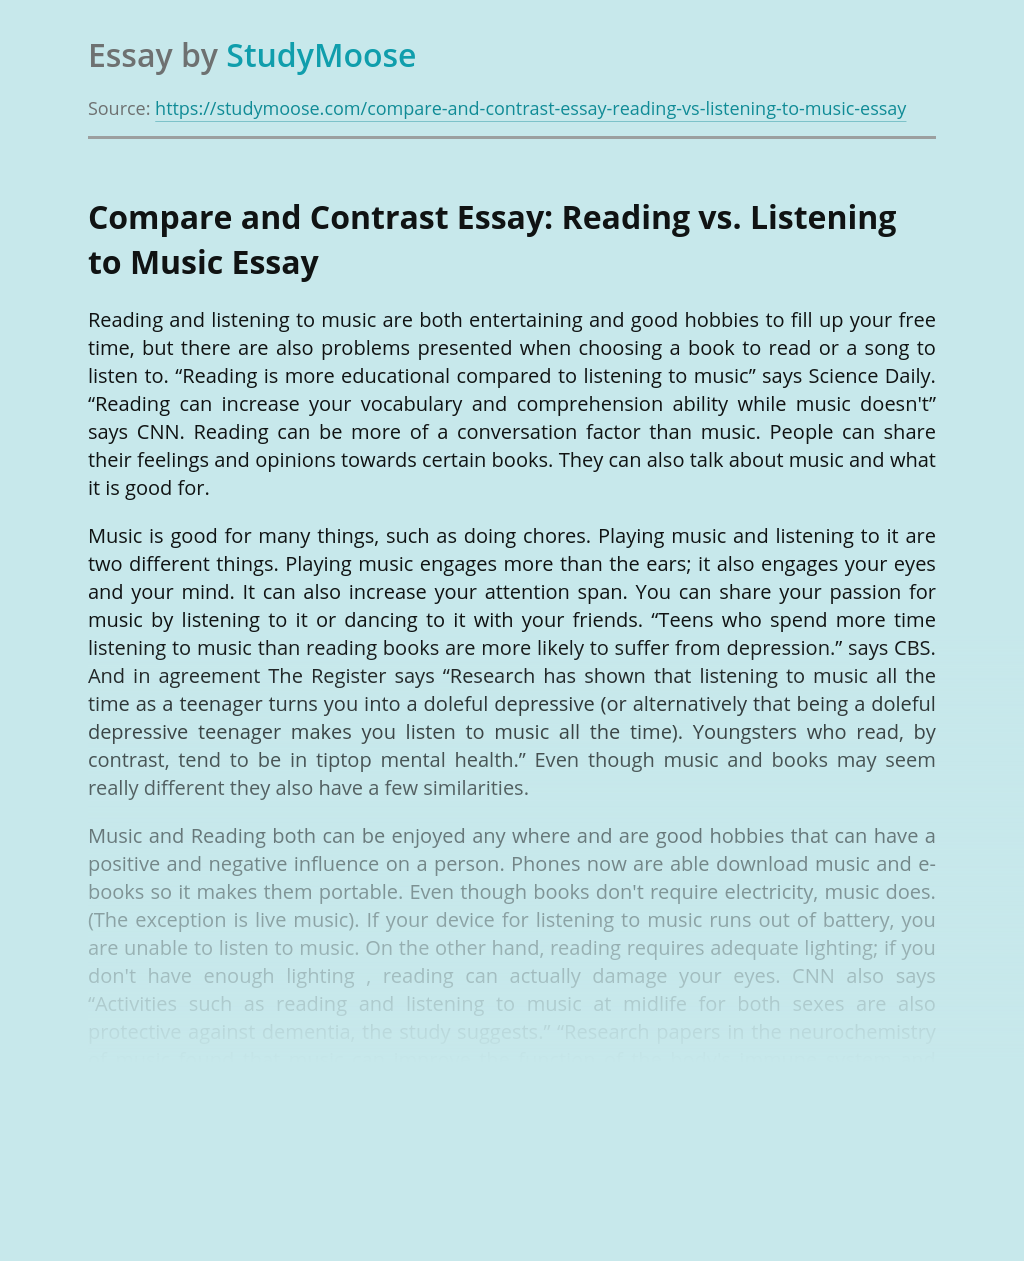 Compare and Contrast Essay: Reading vs. Listening to Music